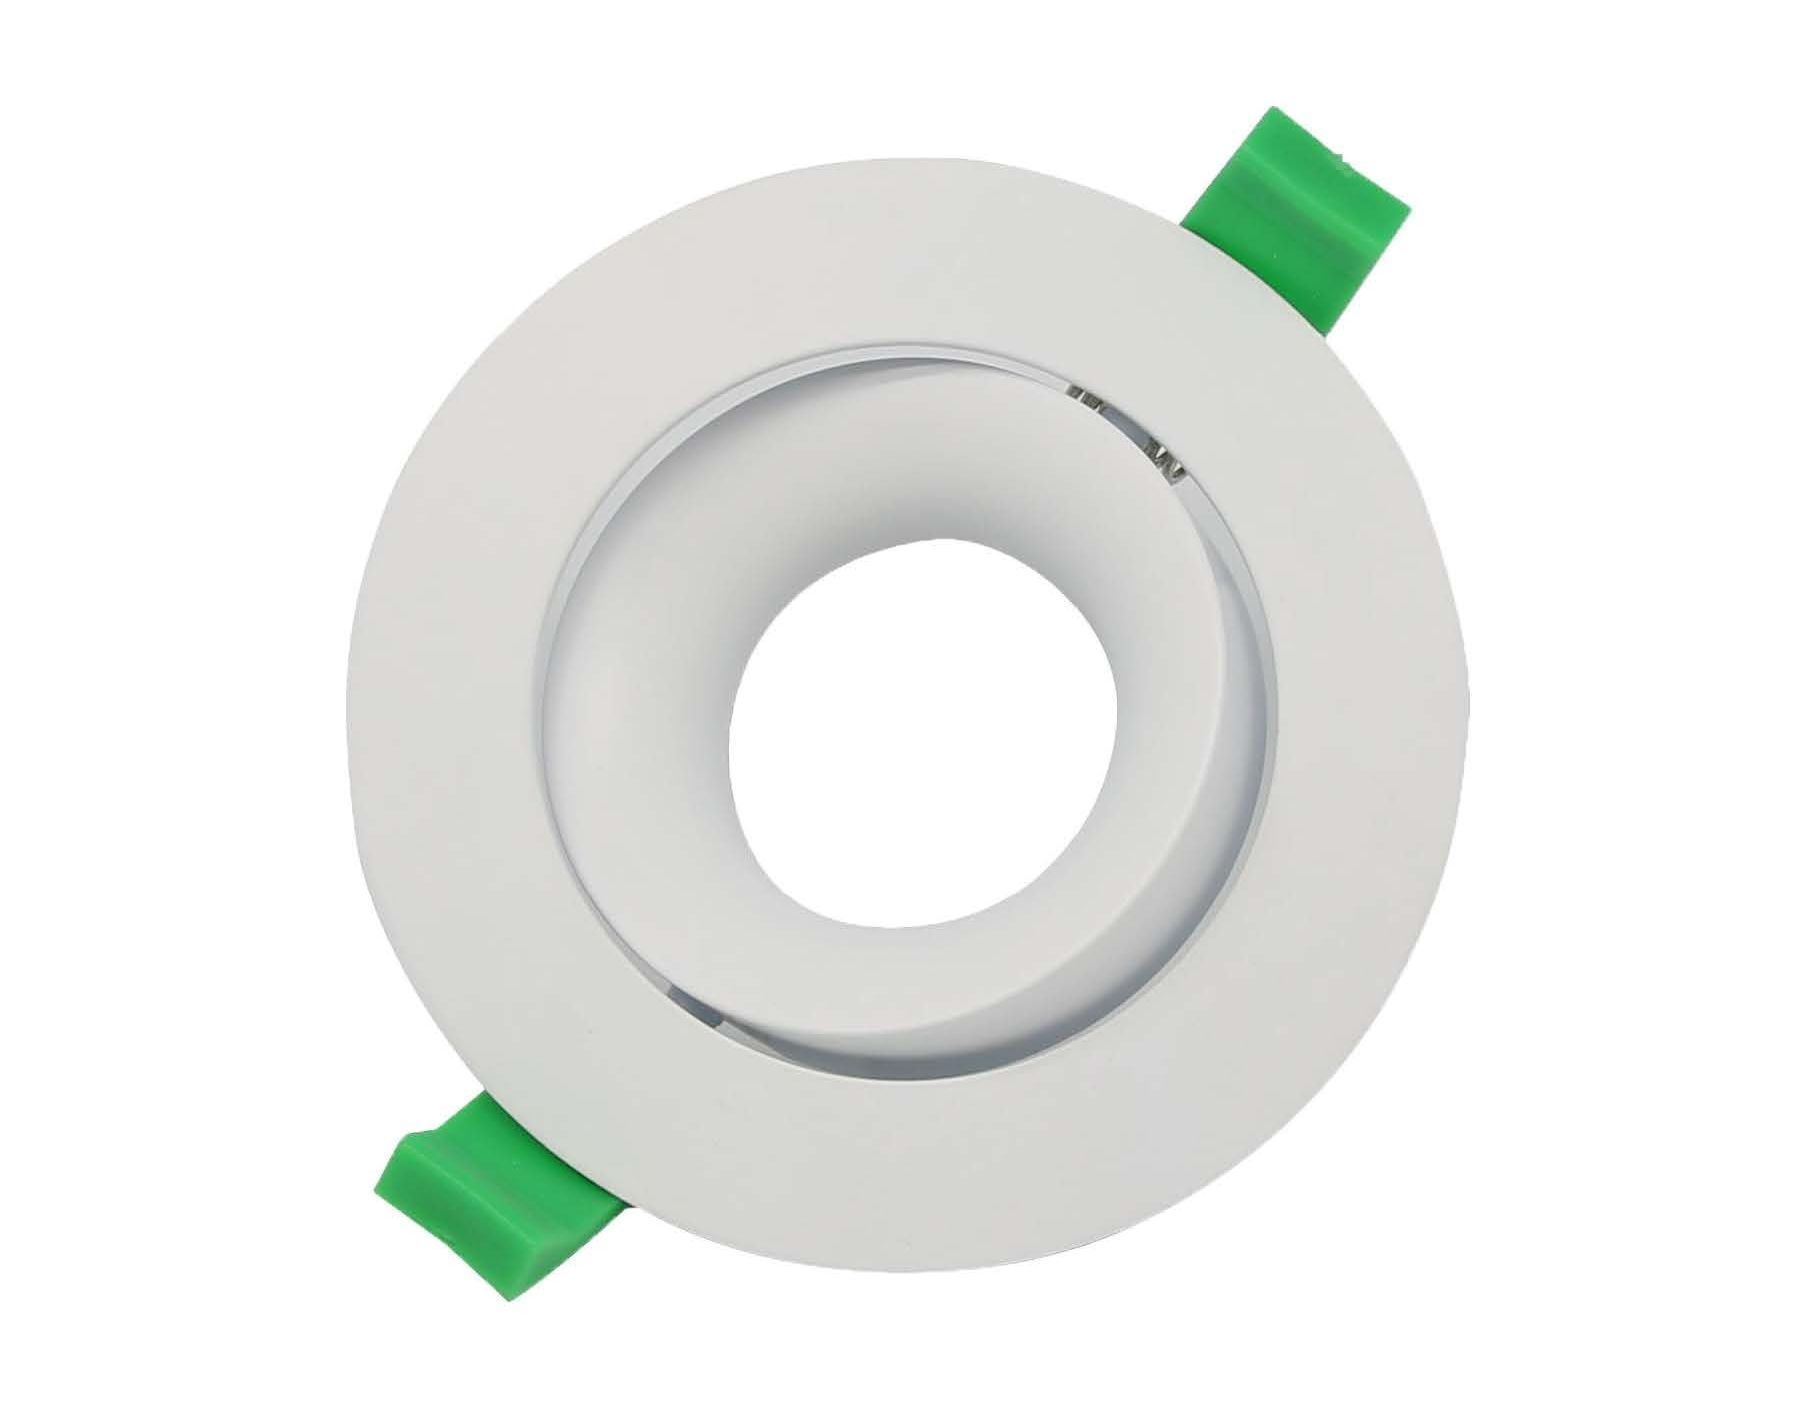 downlight frame